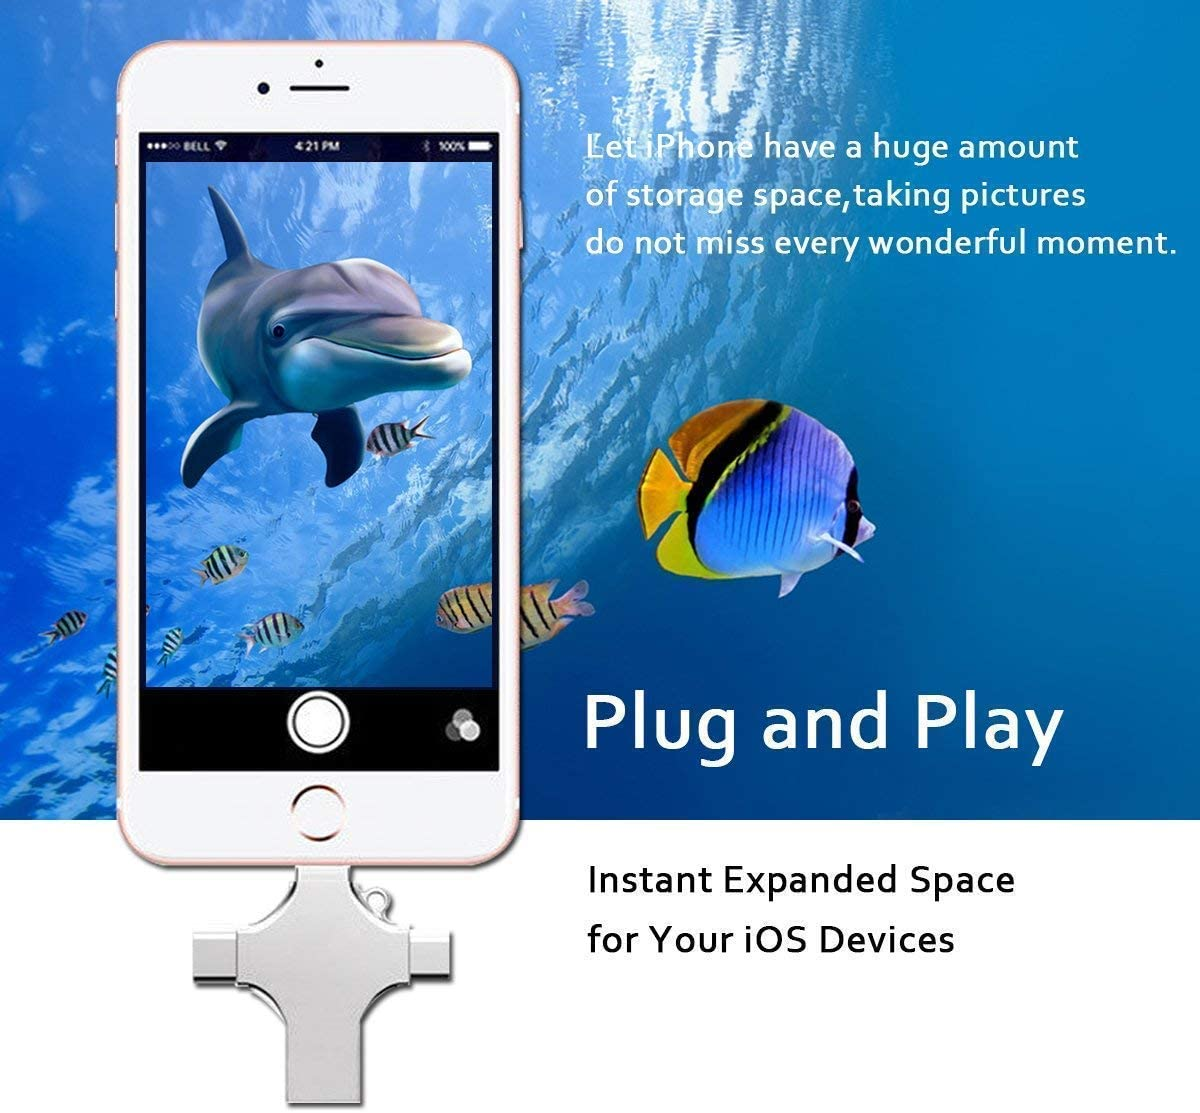 B/&H-ERX USB Flash Drive,4 in 1 External Storage Expansion Memory Stick USB Type-C Ports for iPhone Ipad iOS Android Tablet Mac PC,16gb